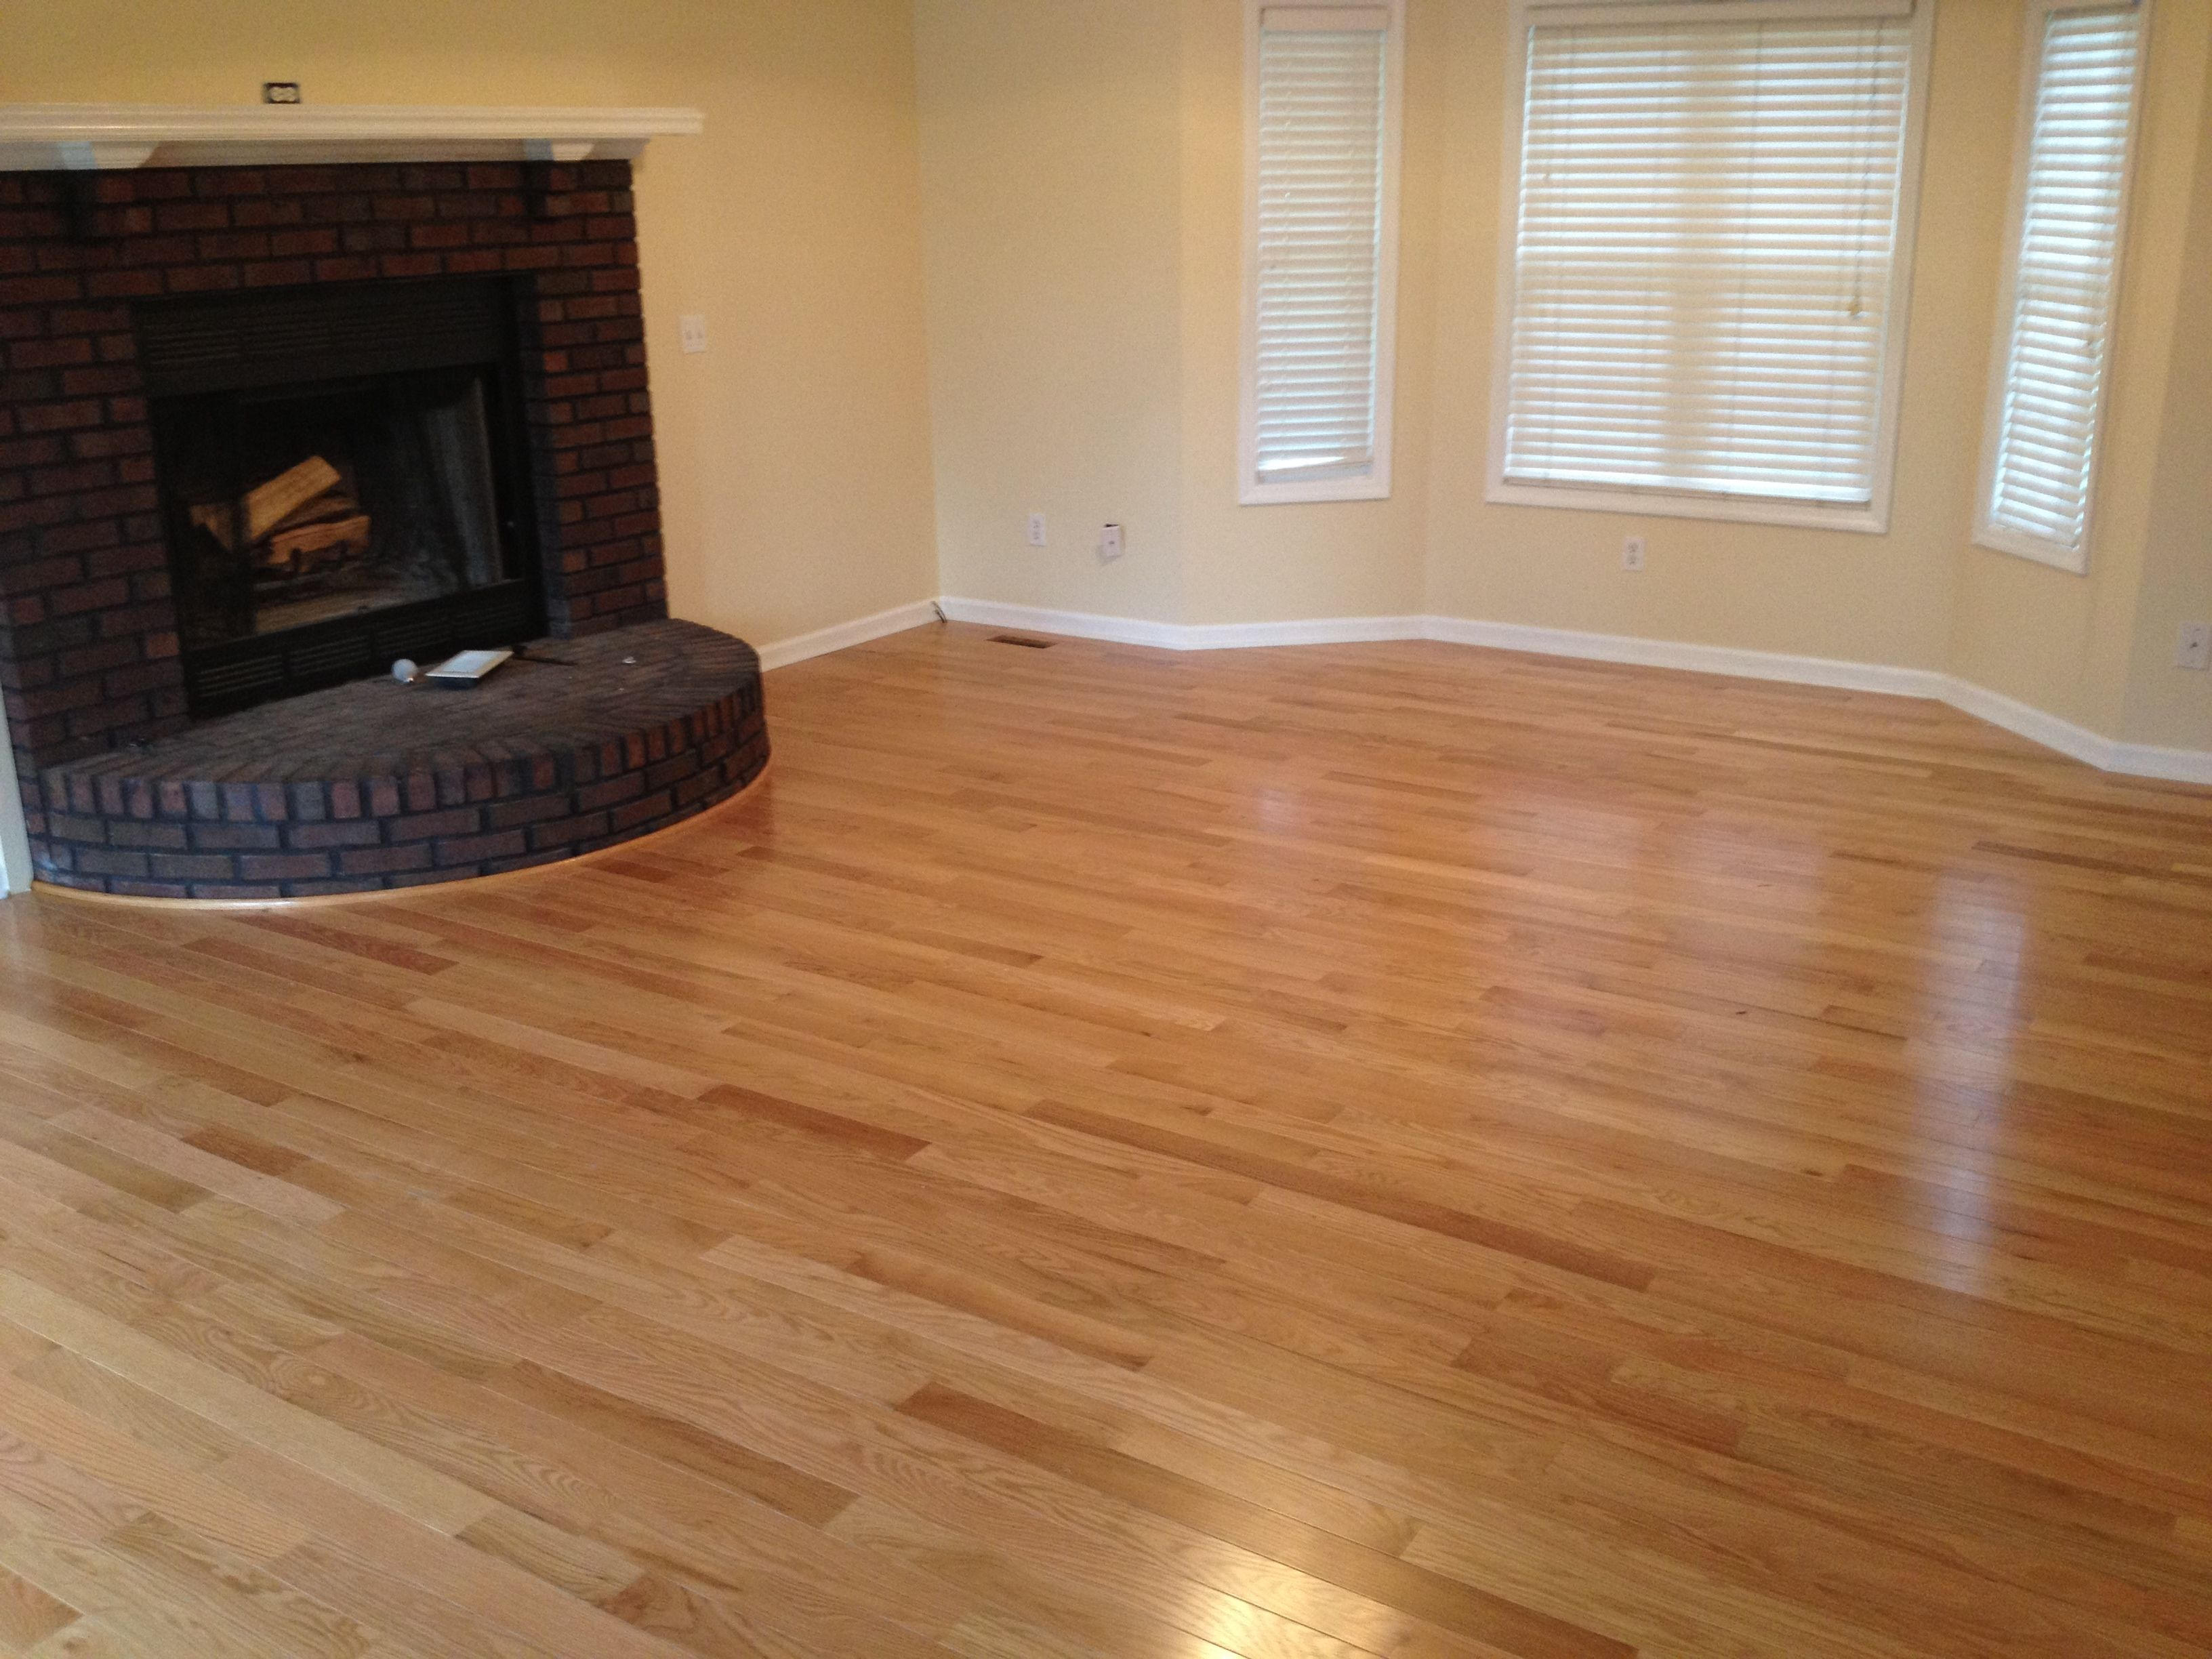 gta can plus wood toronto floor experts layers refinish engineered prices floors you contractor flooring